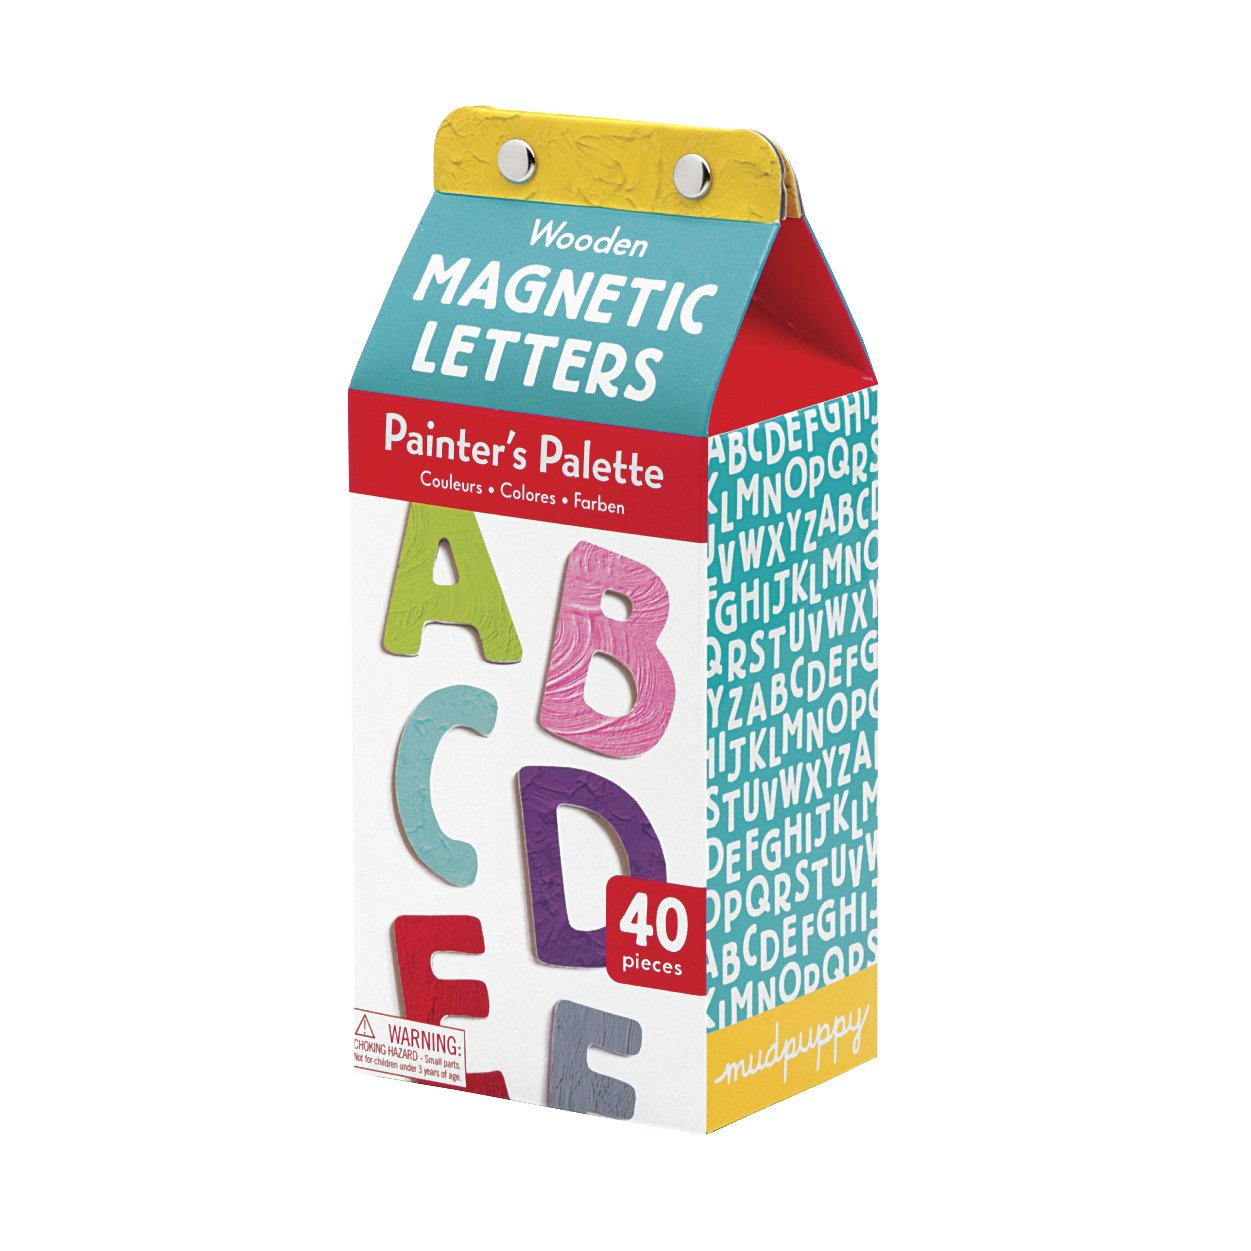 Mudpuppy Painter's Palette Uppercase Letters Wooden Magnetic Set